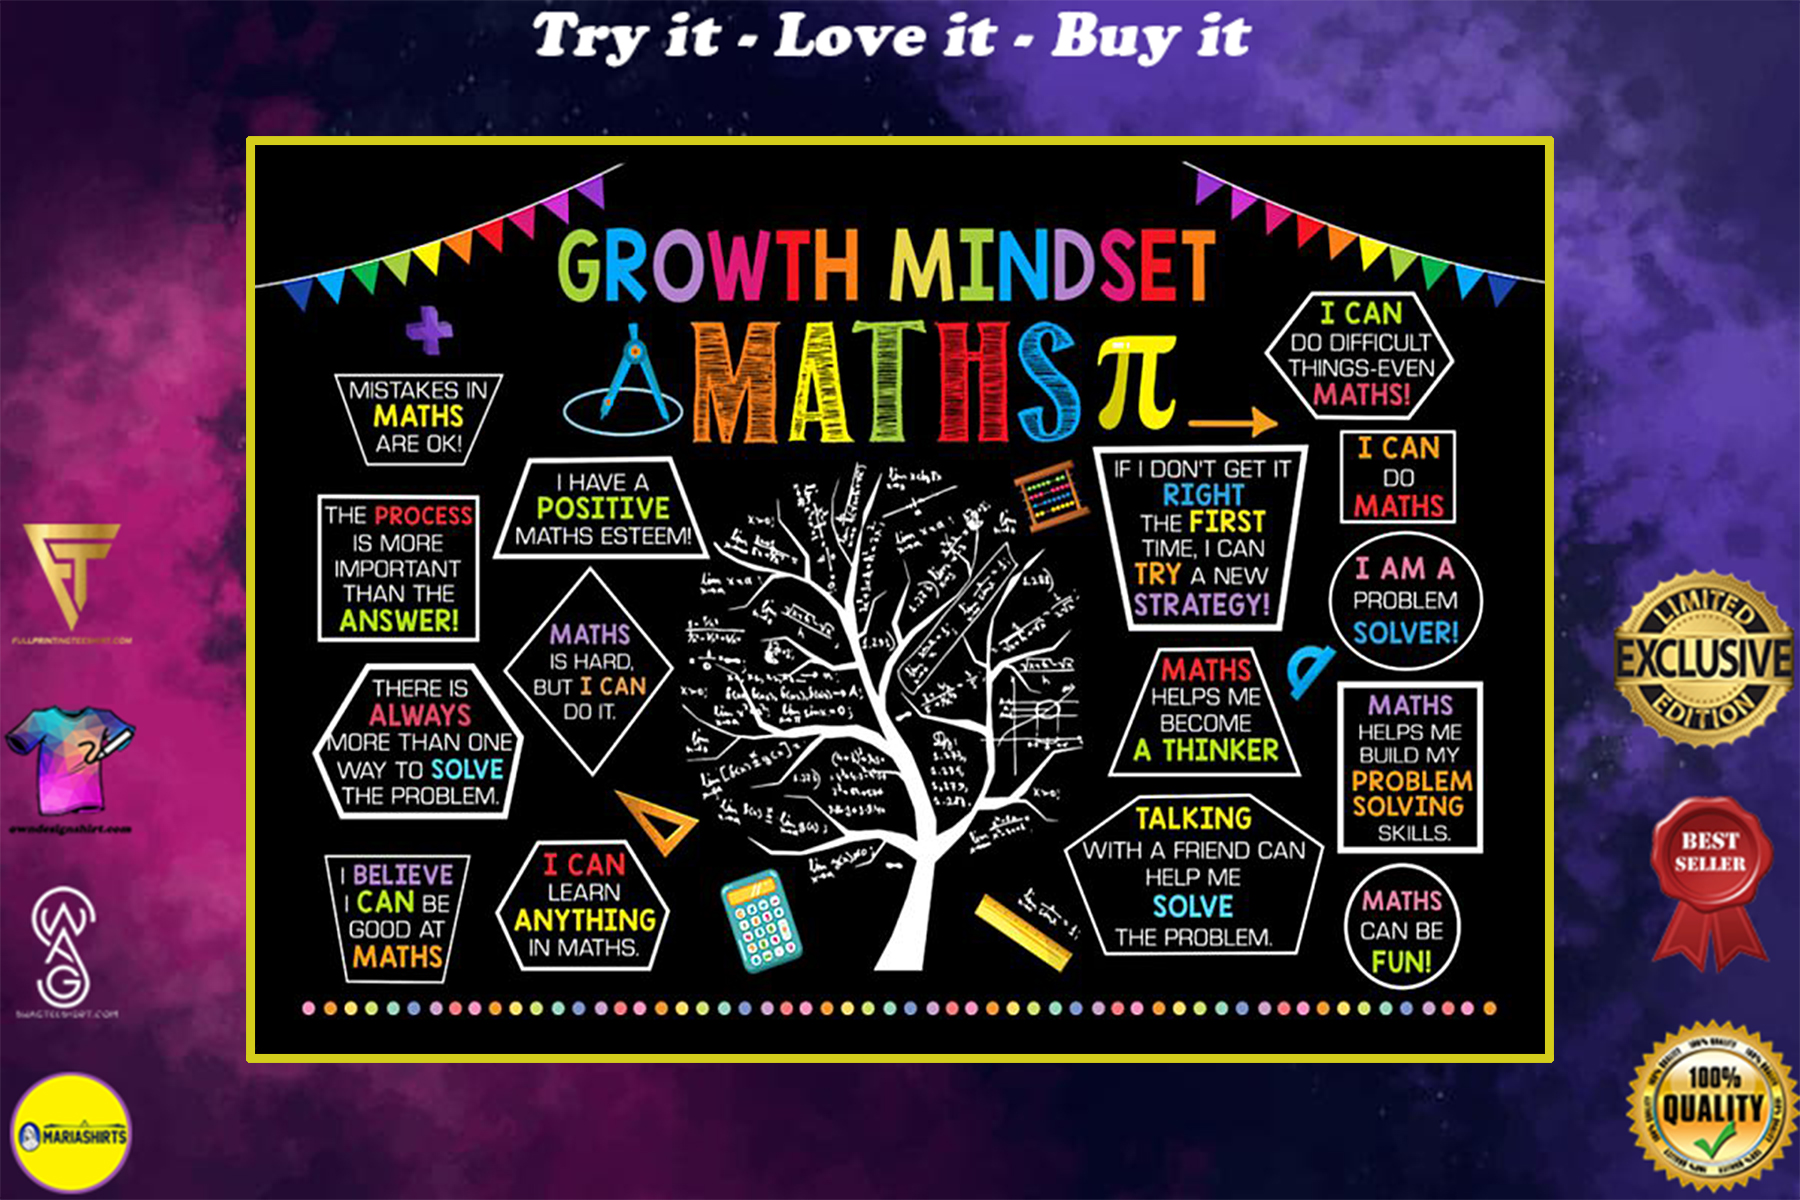 back to school growth mindset maths poster